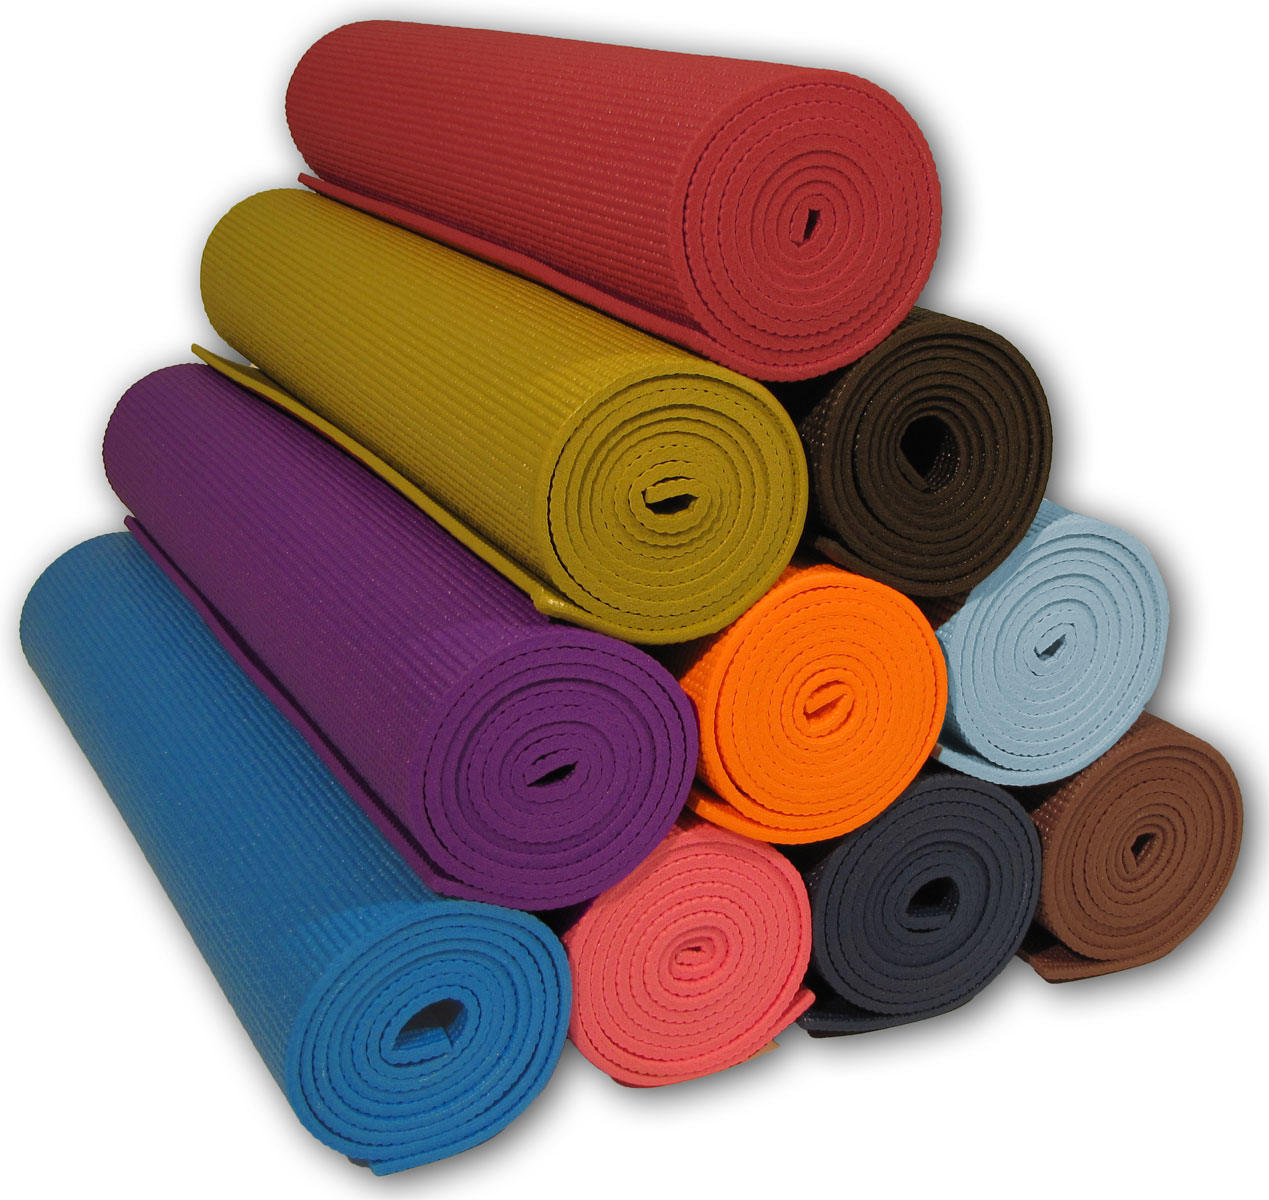 Stacked yoga mats